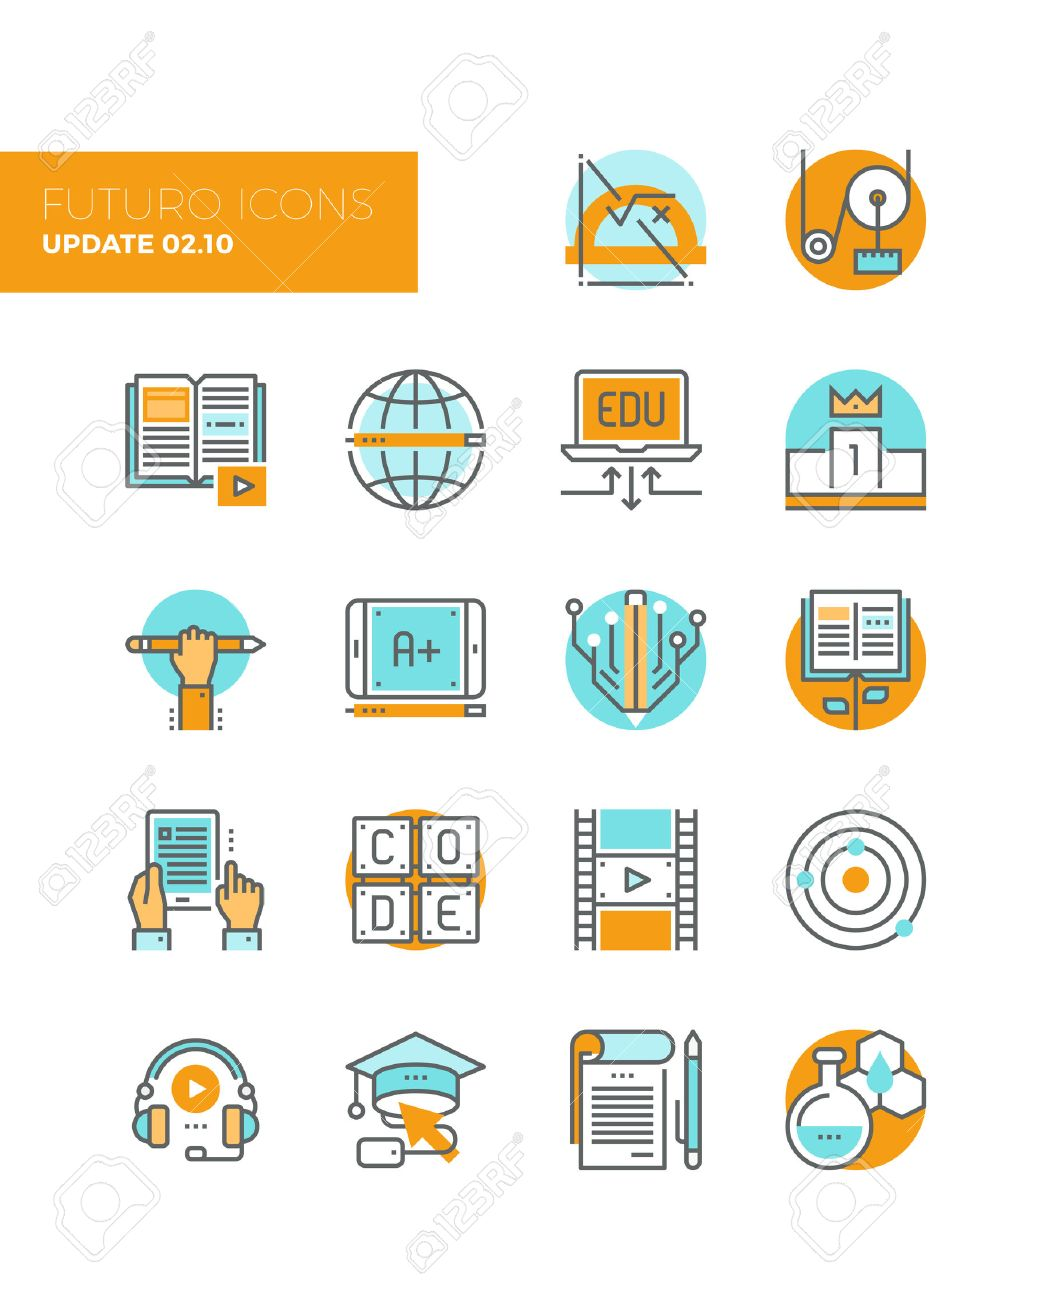 Line icons with flat design elements of online education technology, people learning applied science, knowledge base growth, learn to code. Modern infographic vector icon pictogram collection concept. Stock Vector - 43582191